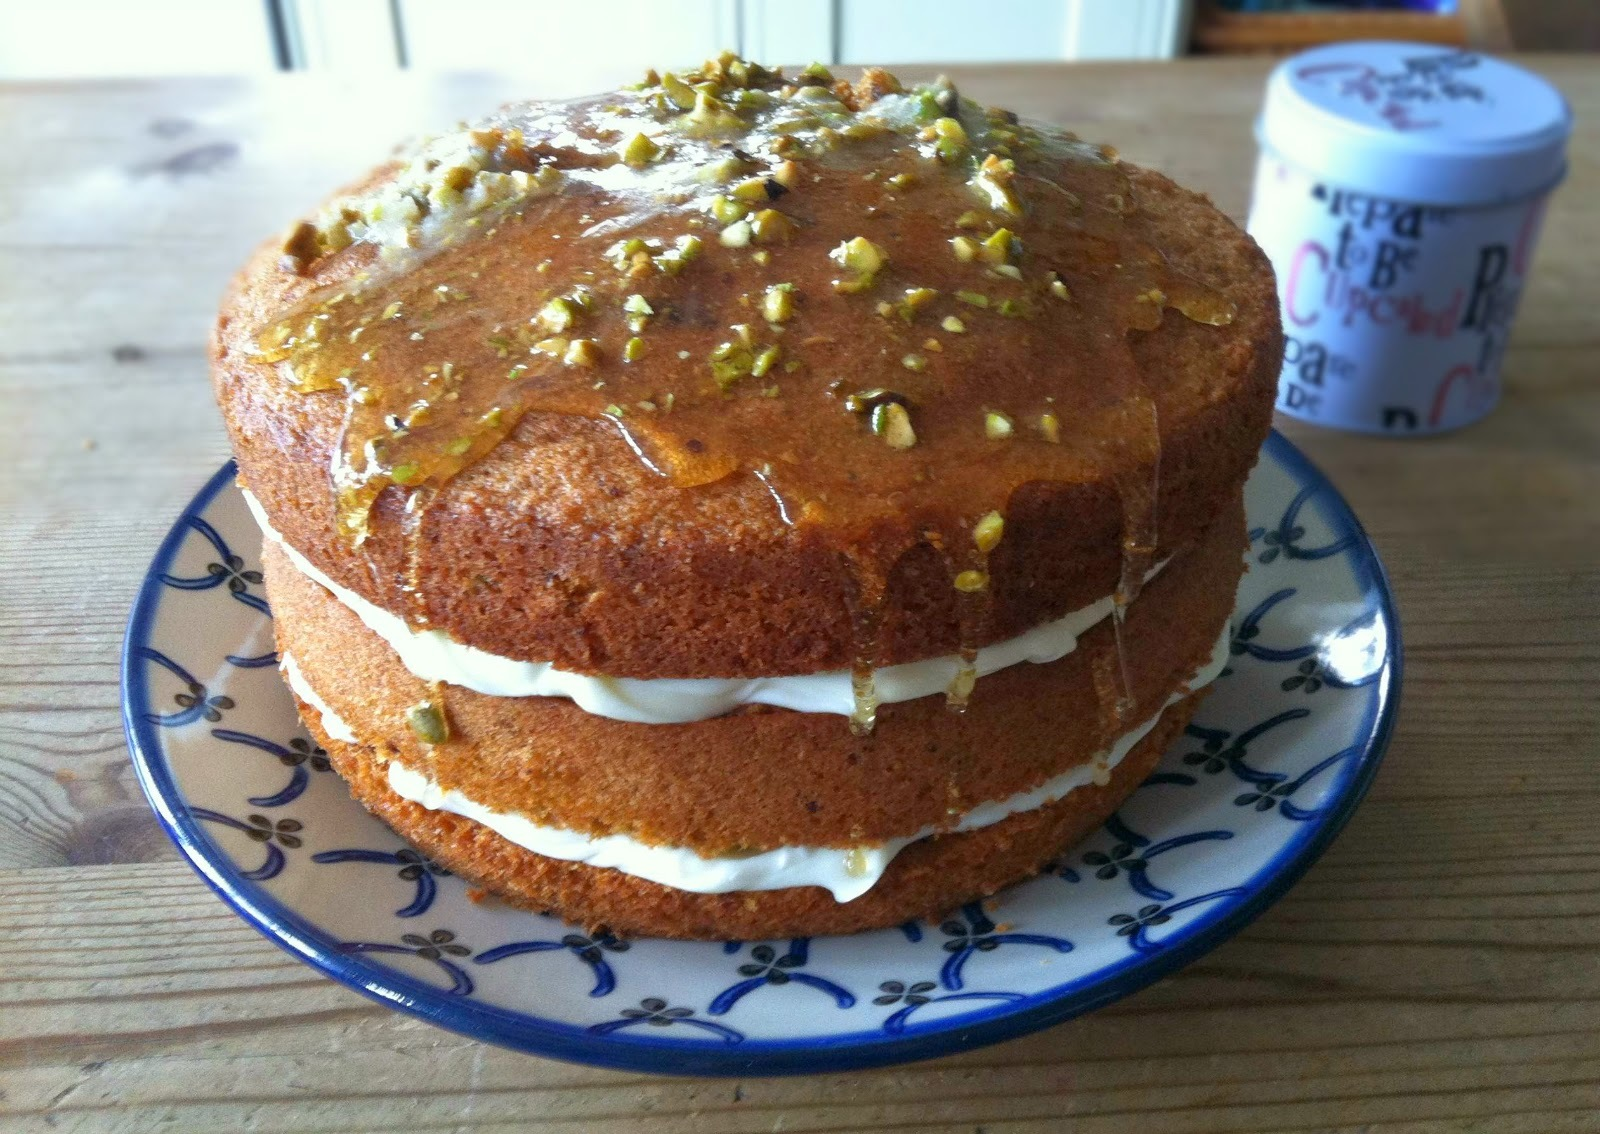 Pistachio and Vanilla Cake